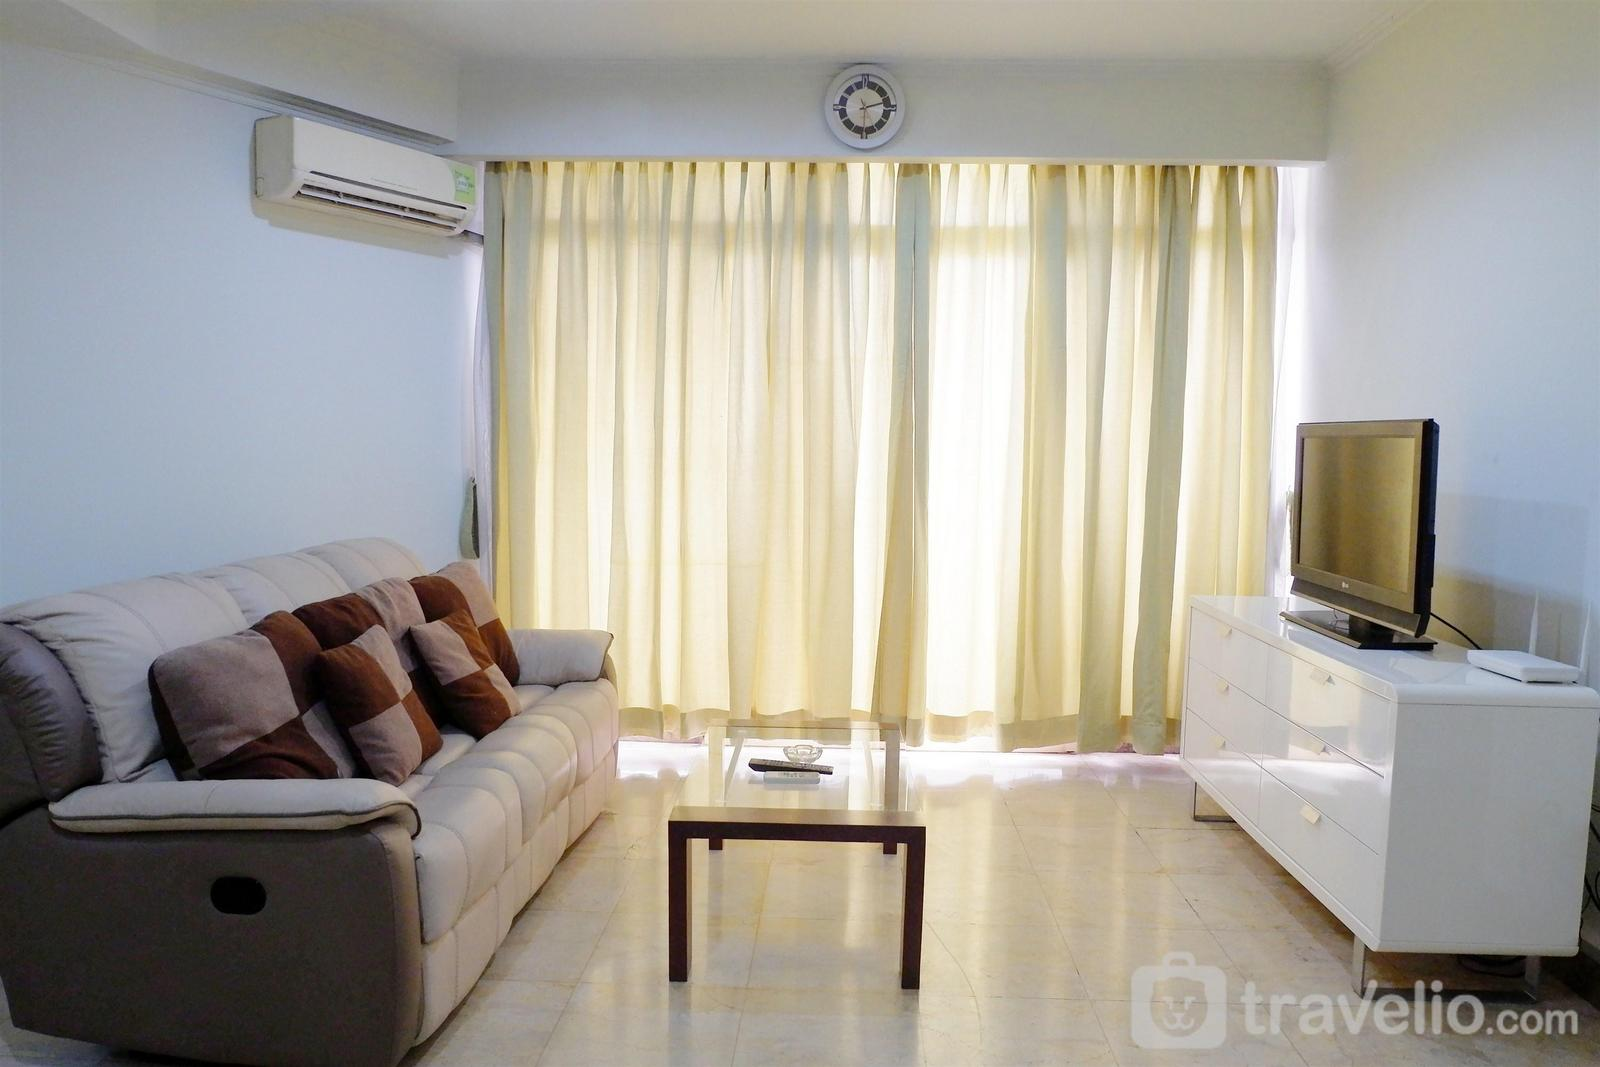 Apartment Slipi - Spacious 2BR Slipi Apartment near Senayan By Travelio